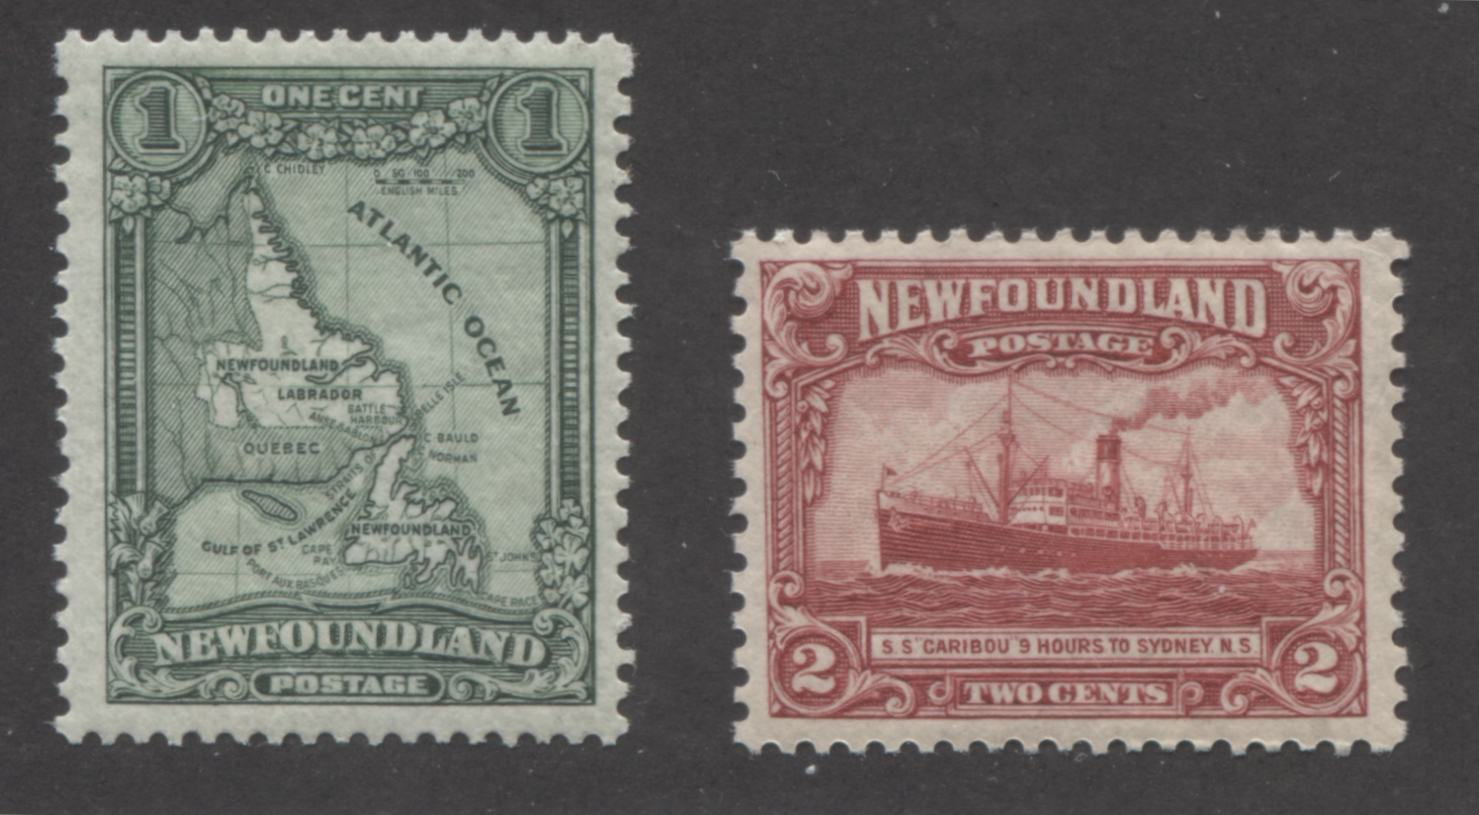 Newfoundland #145-146 1c Green and 2c Carmine 1928-1929 Publicity Issue, Very Fine Mint NH Examples, Each a Different Perf. Brixton Chrome